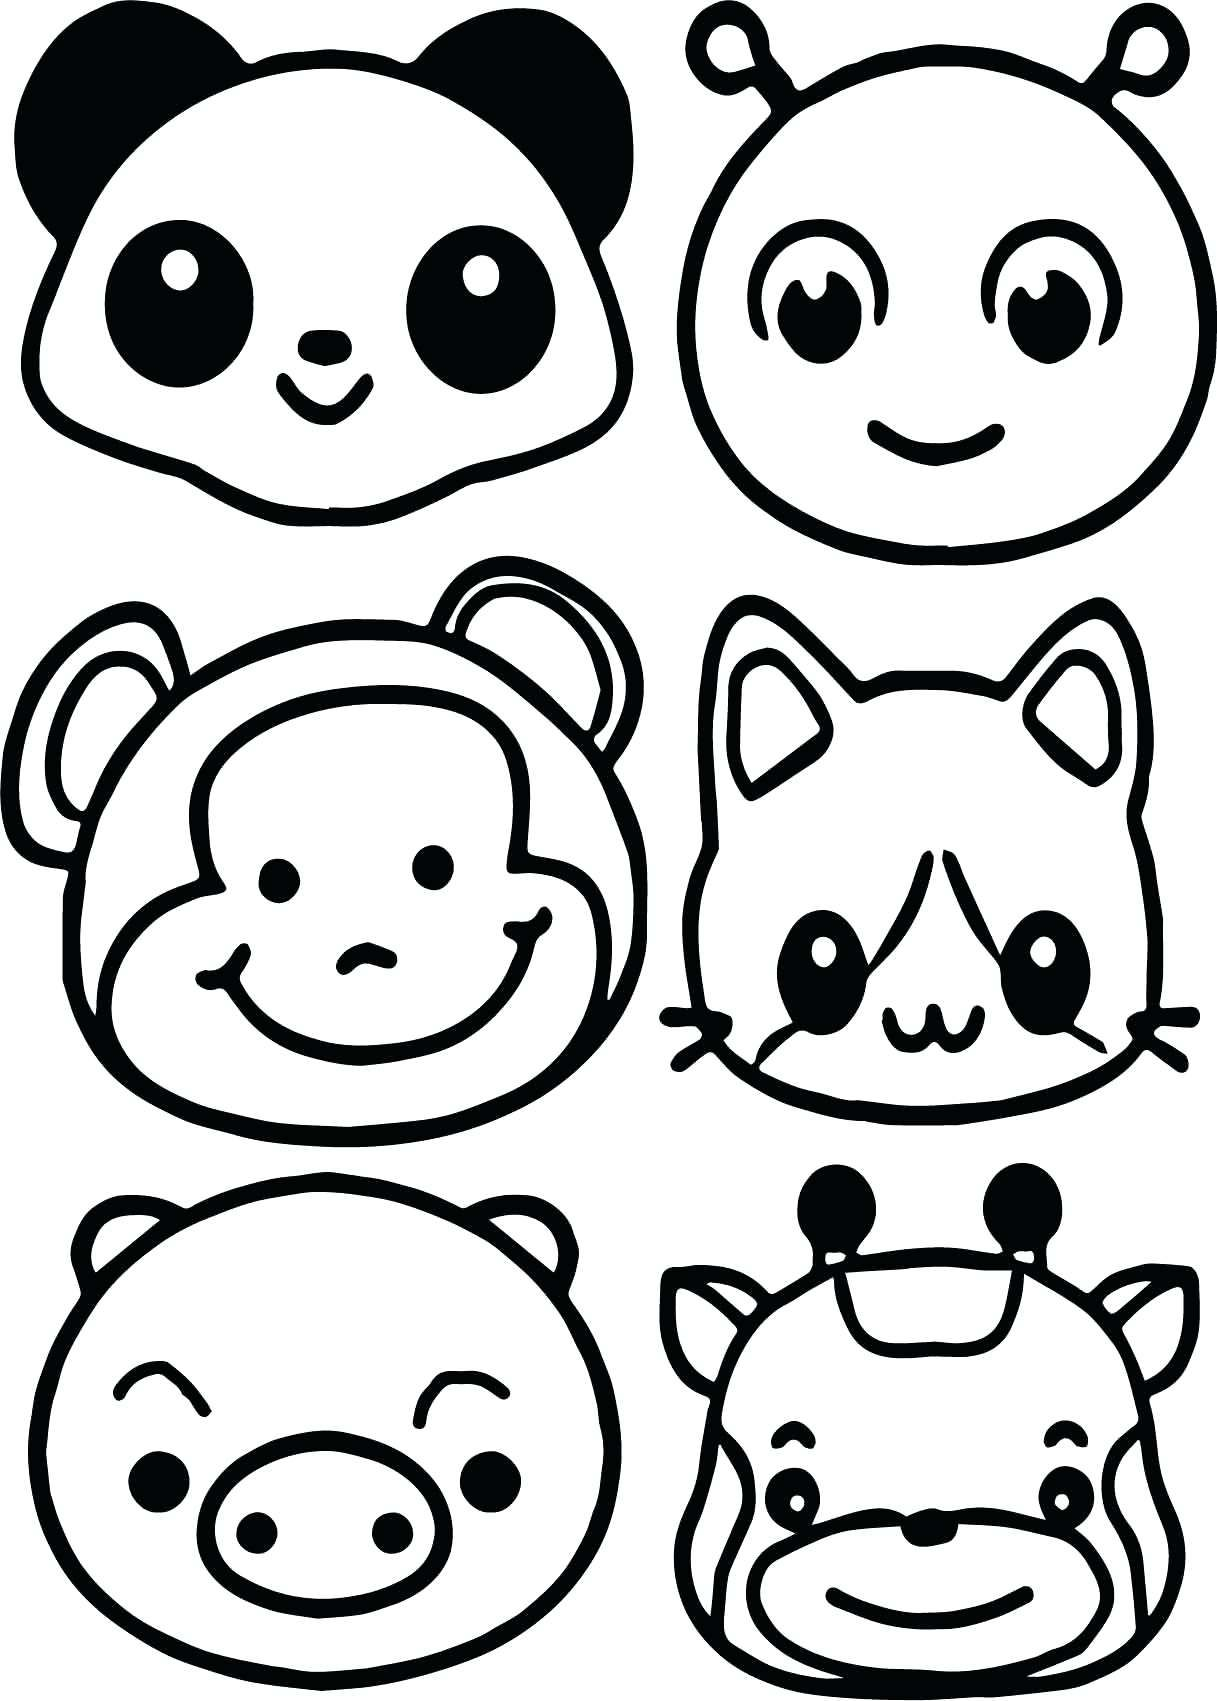 Animal Faces For Coloring Bunny Coloring Pages Monkey Coloring Pages Kitty Coloring